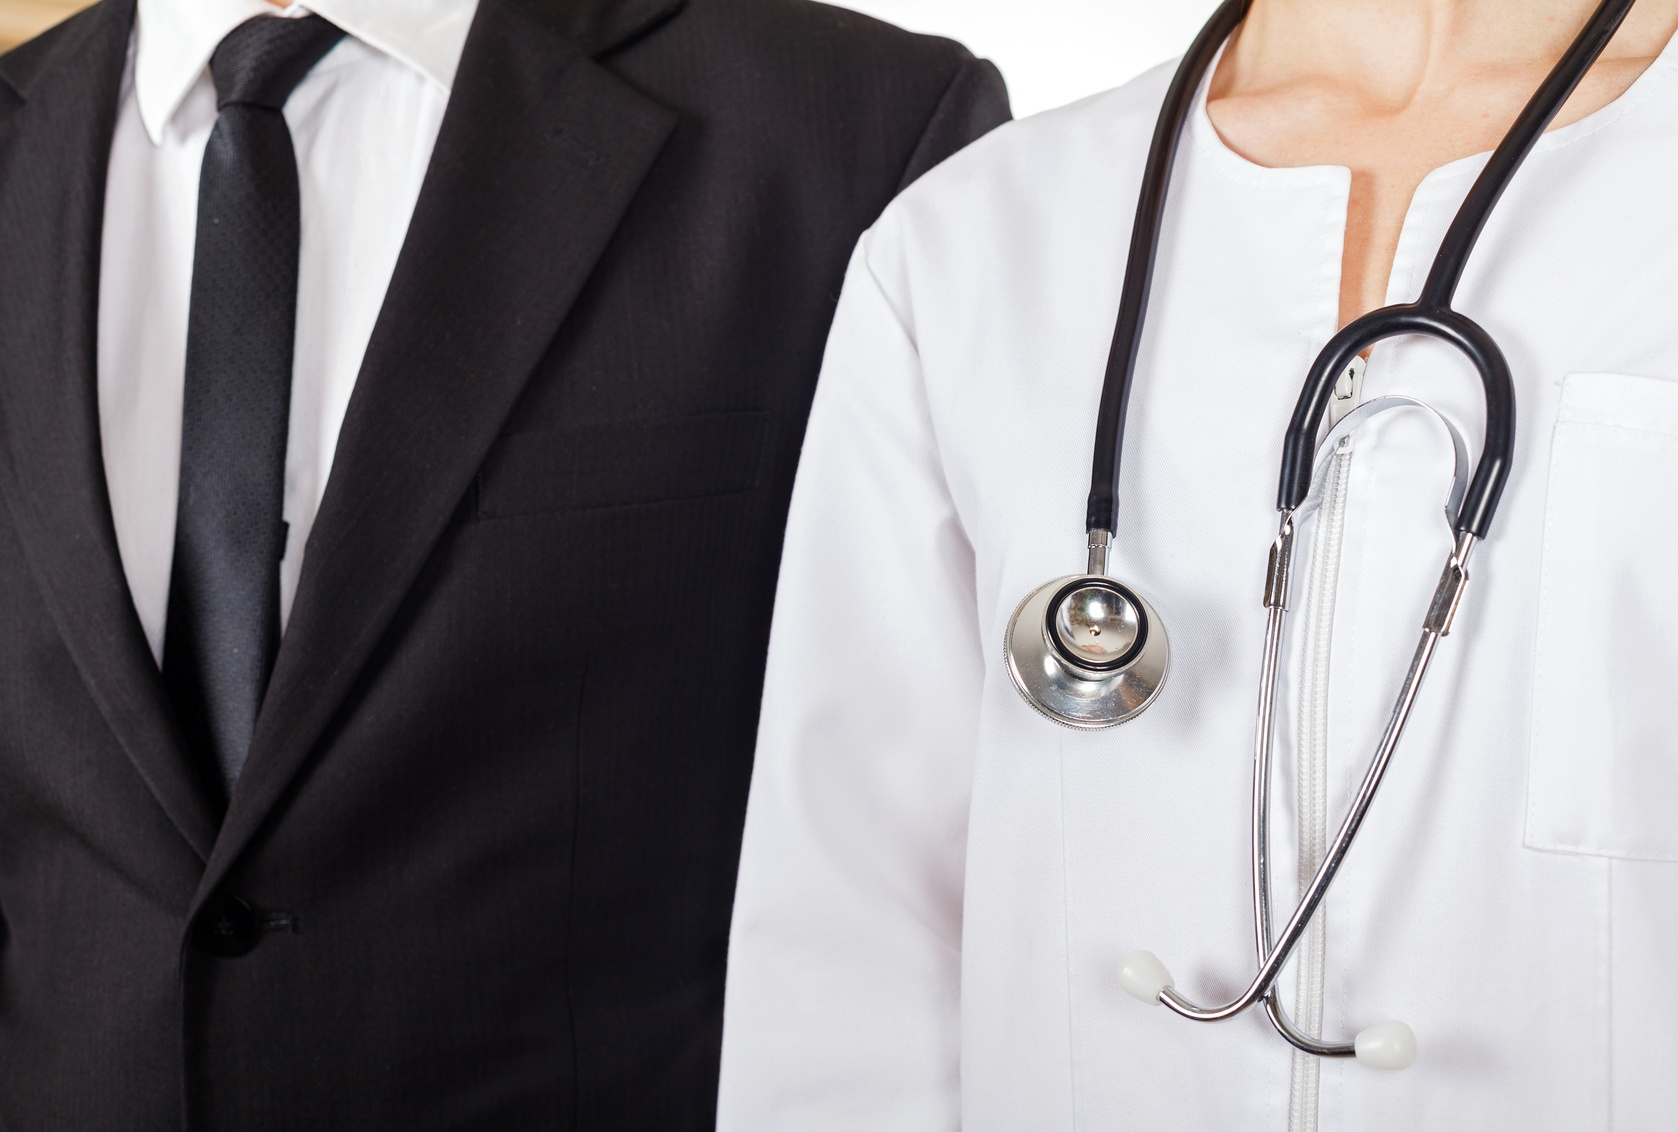 Lawyer and Doctor